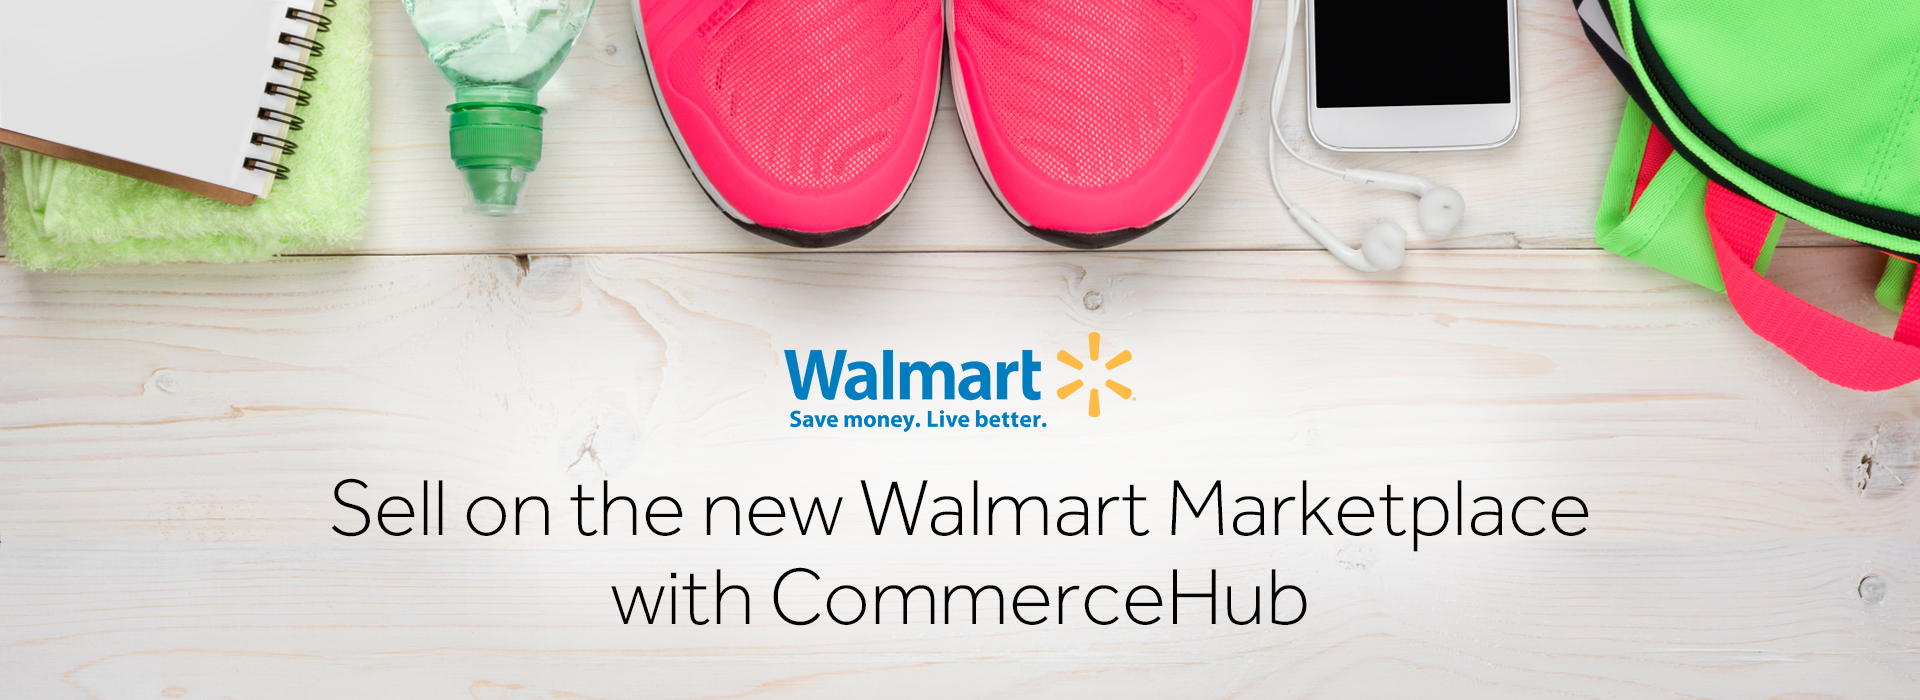 sell on walmart marketplace